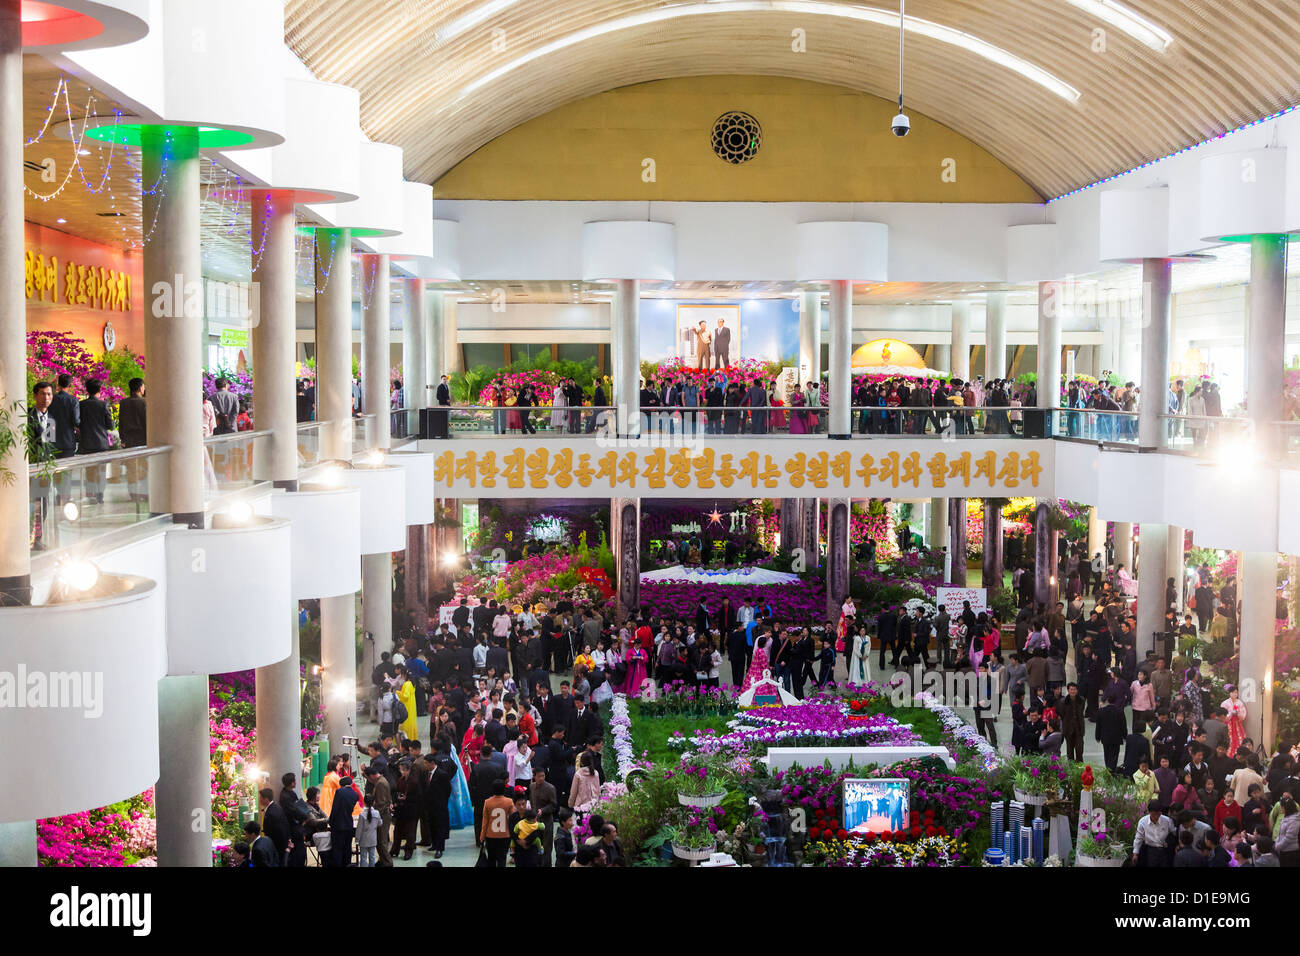 Kimilsungia Flower Exhibition Hall with flower show to celebrate Kim Il Sung's 100th Anniversary, Pyongyang, North Stock Photo